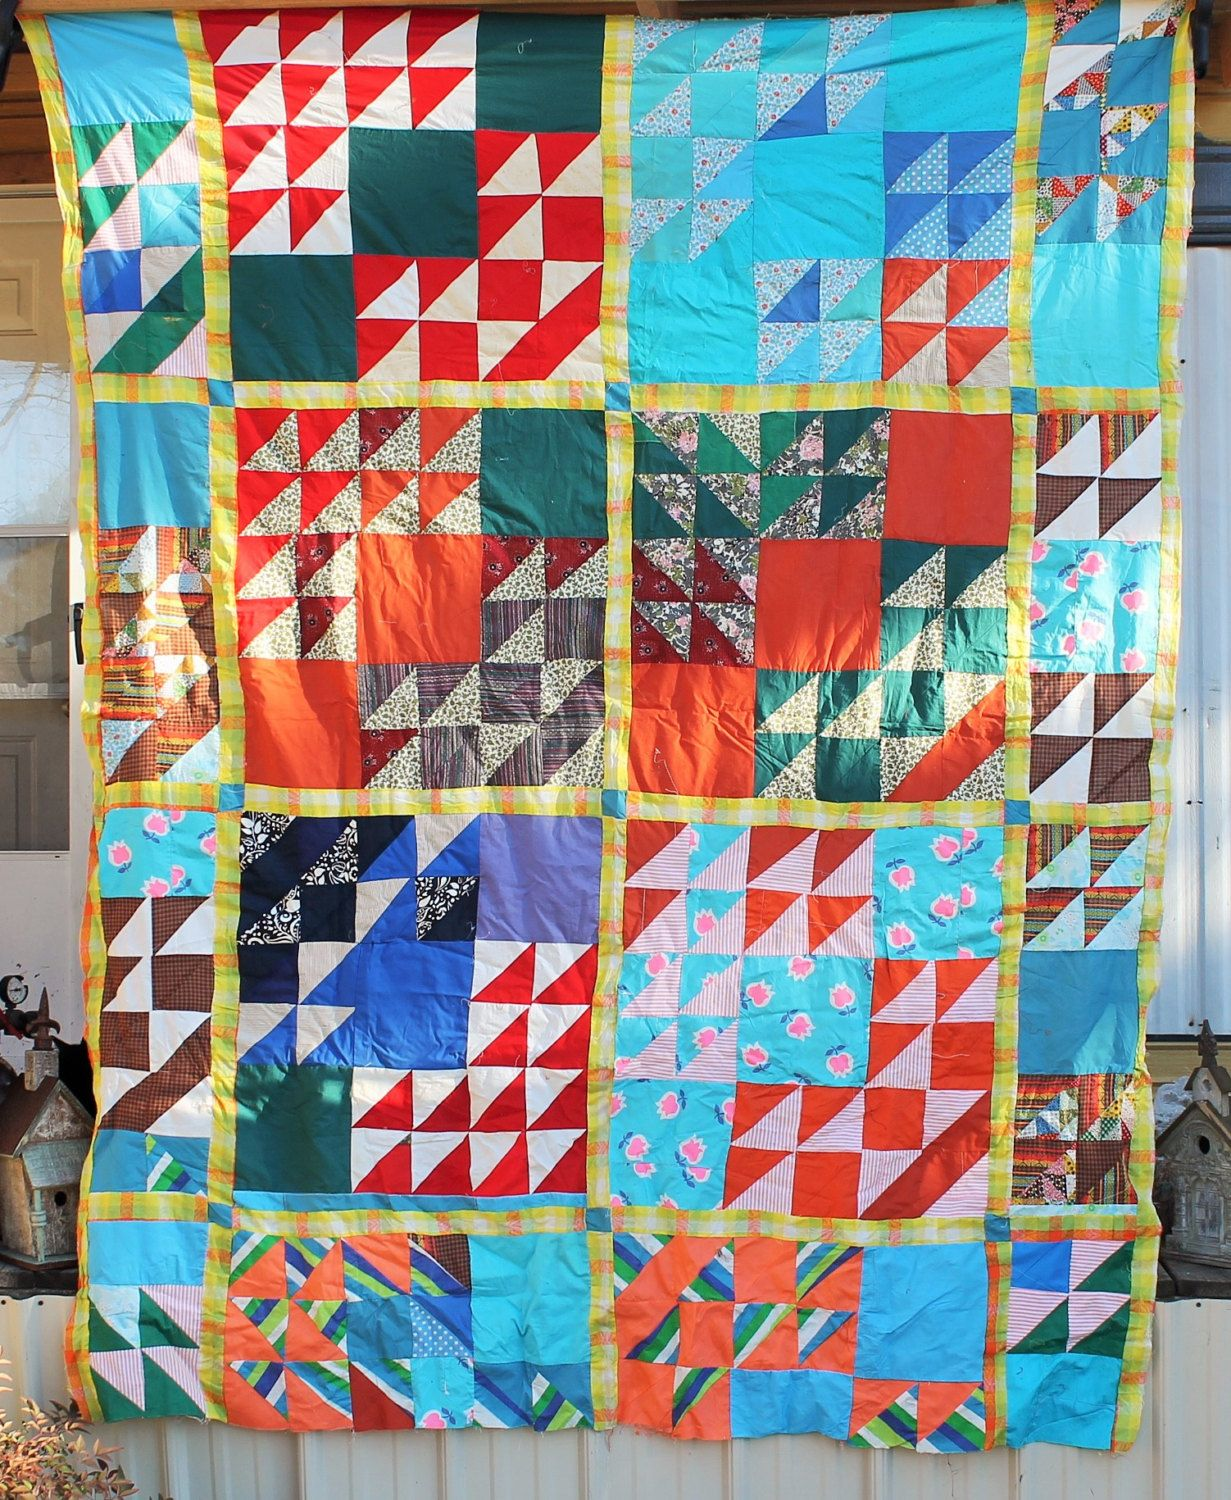 ANTIQUE Unfinished QUILT TOPS For Sale, Vintage Handmade Feedsack ... : feedsack quilts for sale - Adamdwight.com